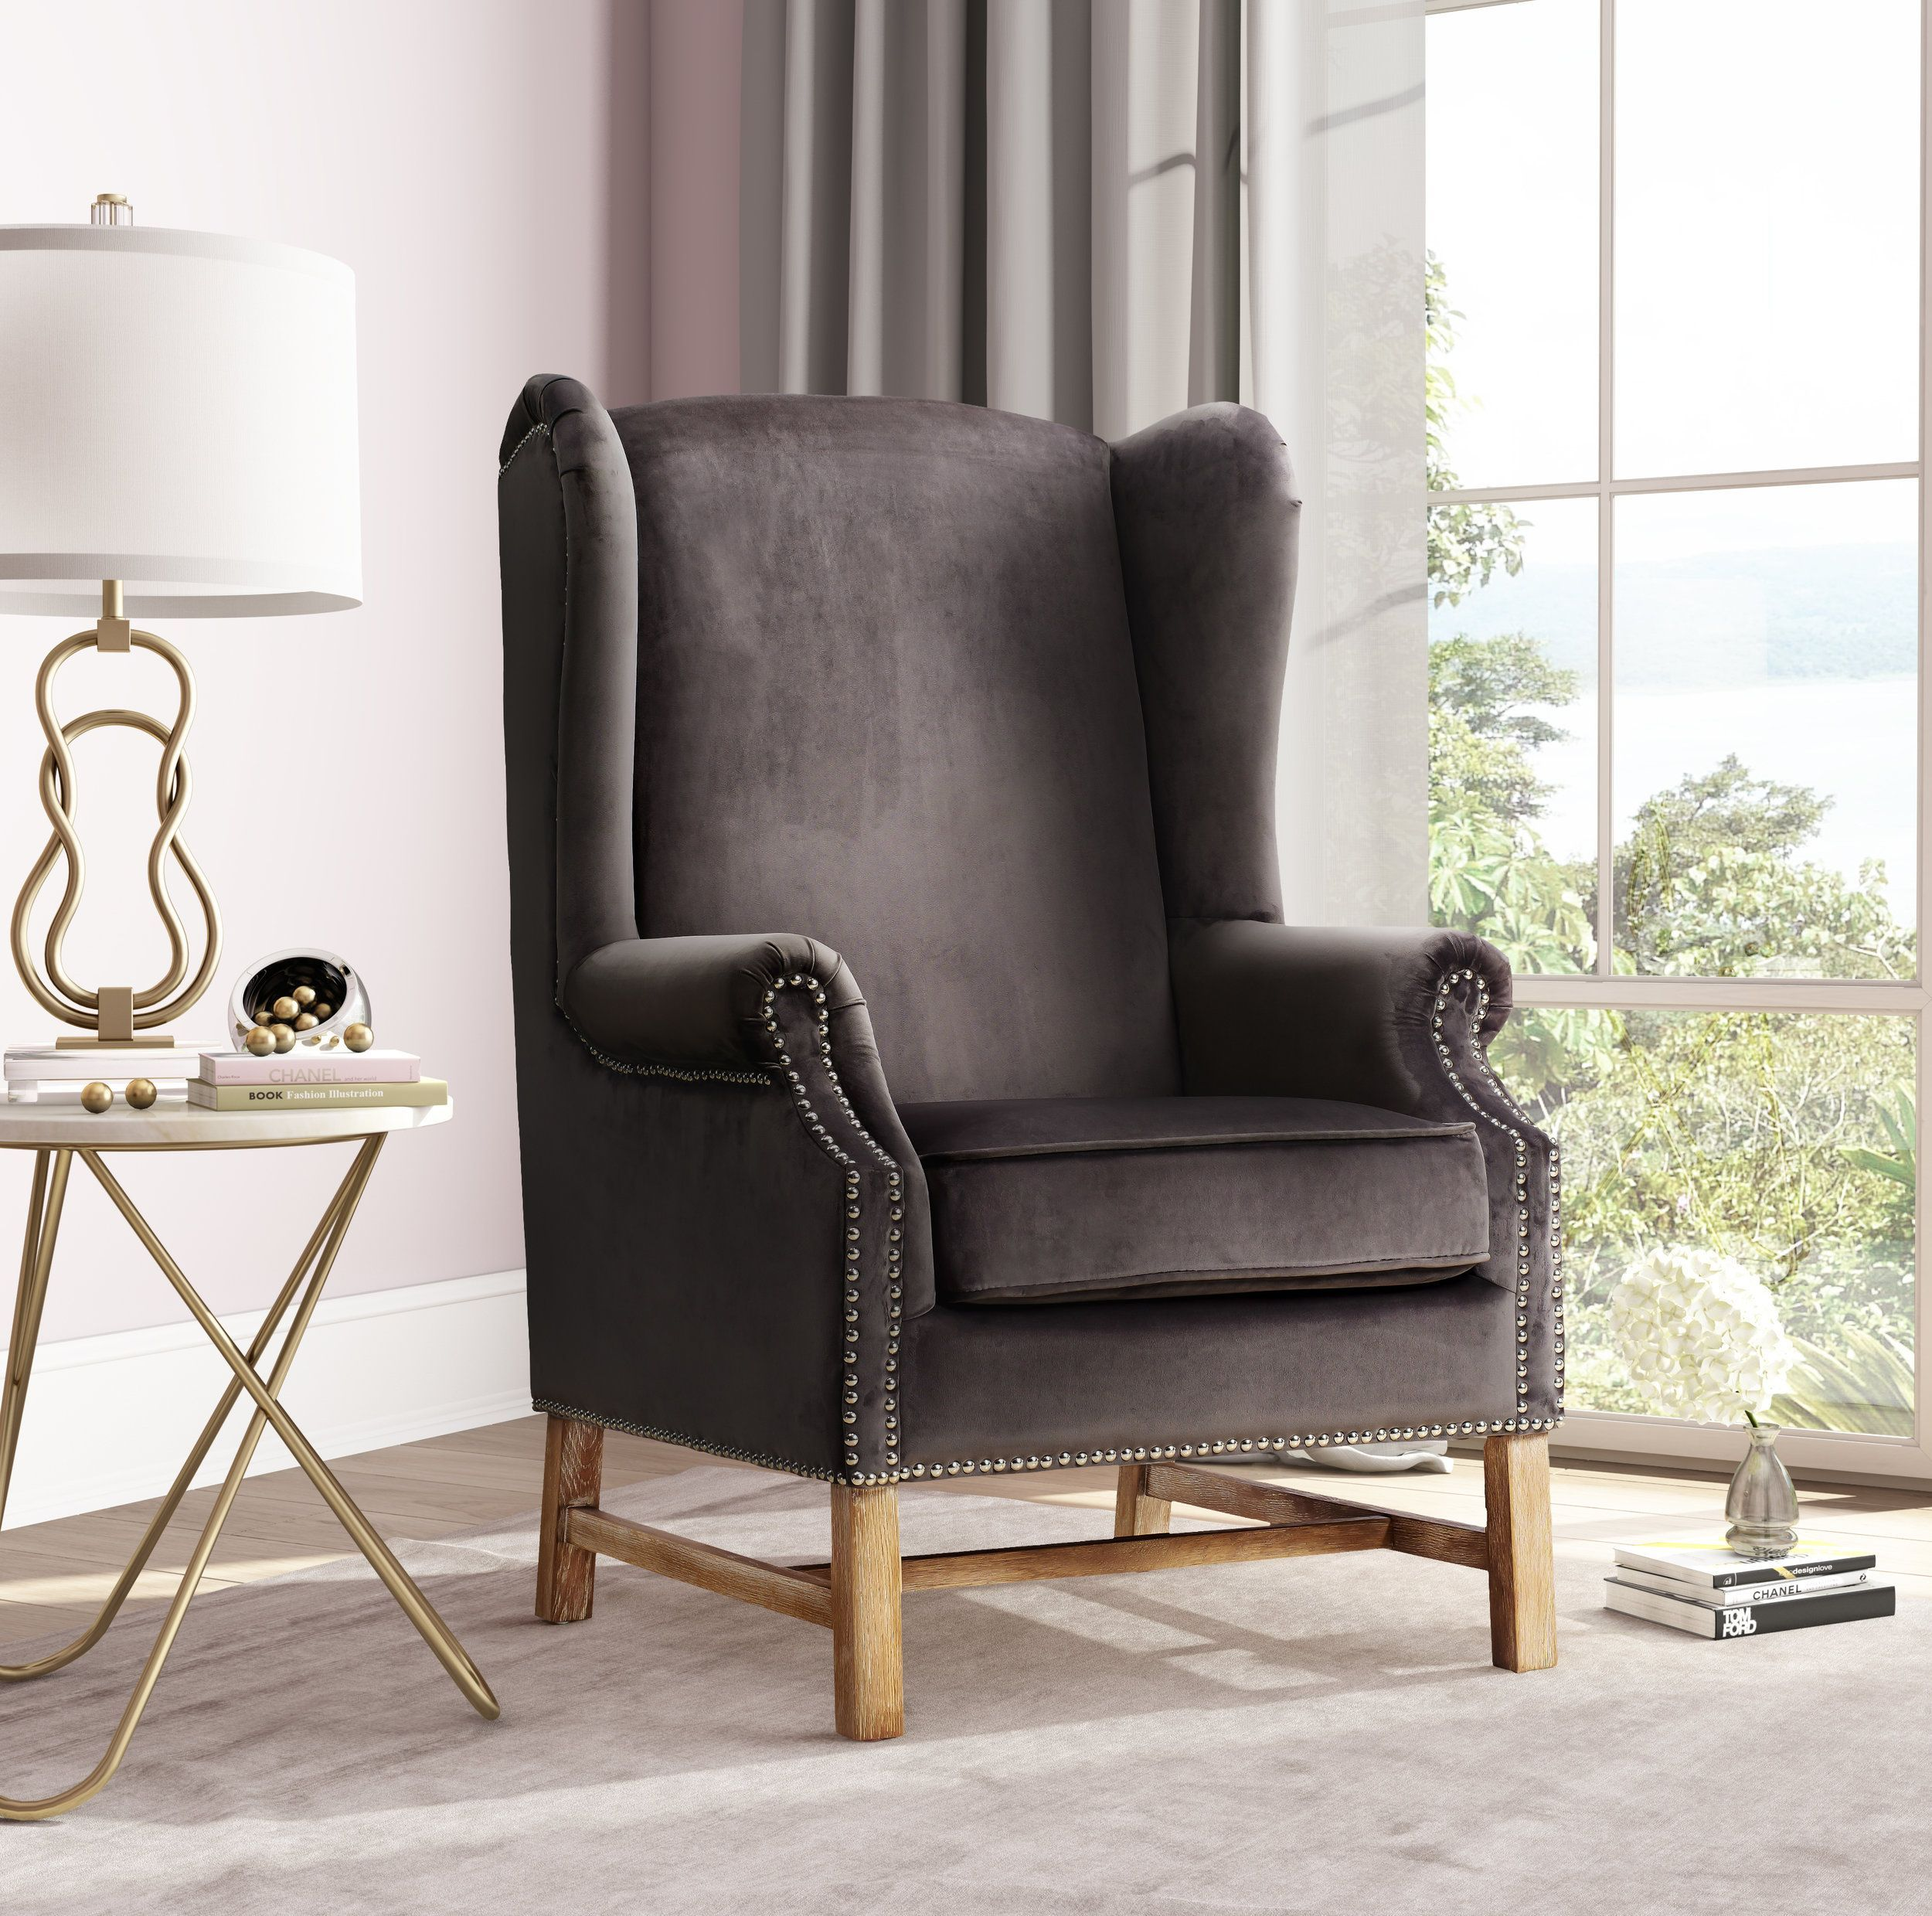 image of Nora Grey Velvet Chair with sku:TOV-A2043